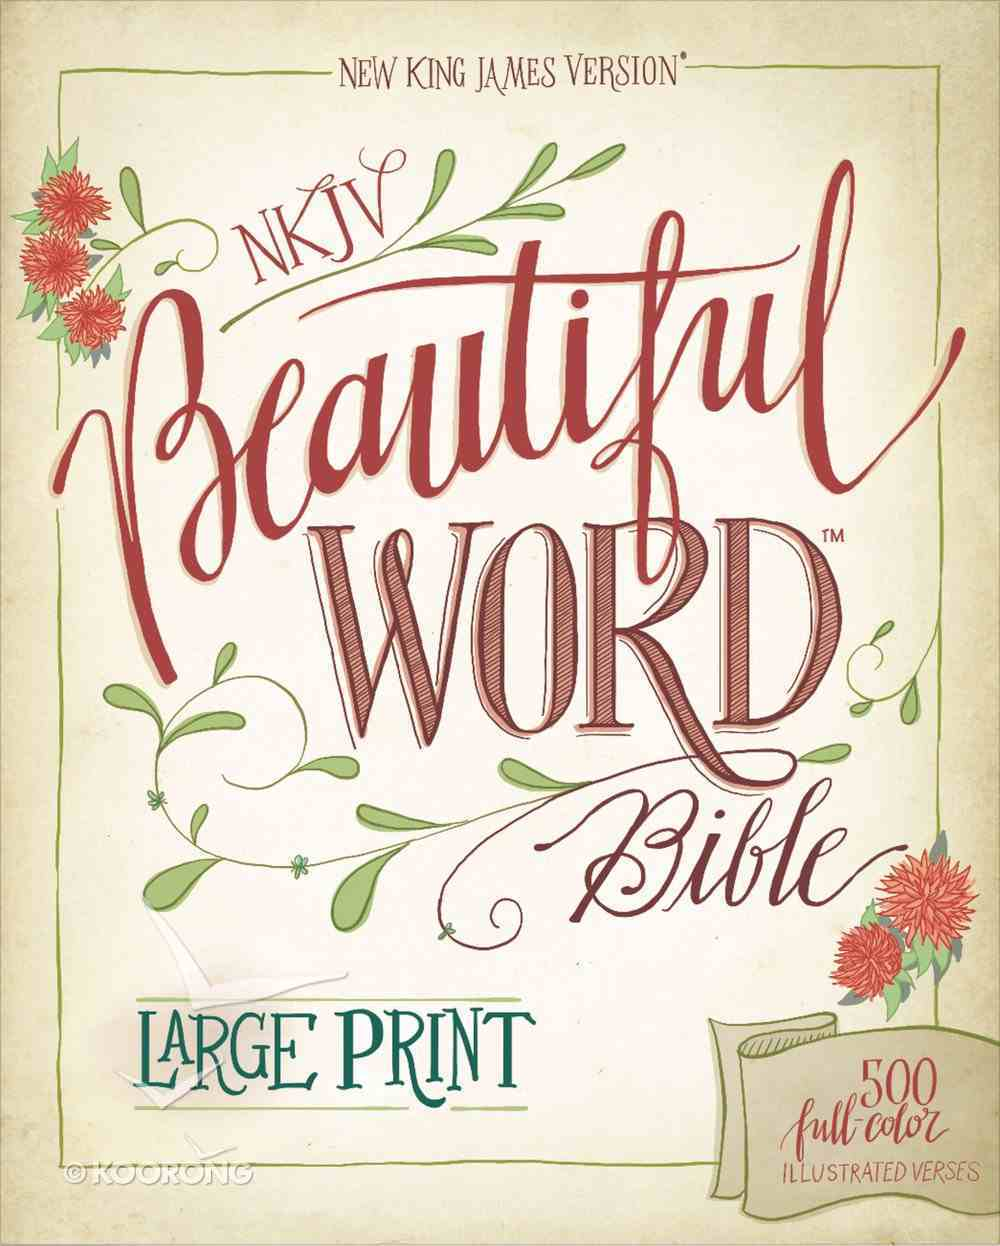 NKJV Beautiful Word Bible Large Print 500 Full-Color Illustrated Verses (Red Letter Edition) Hardback